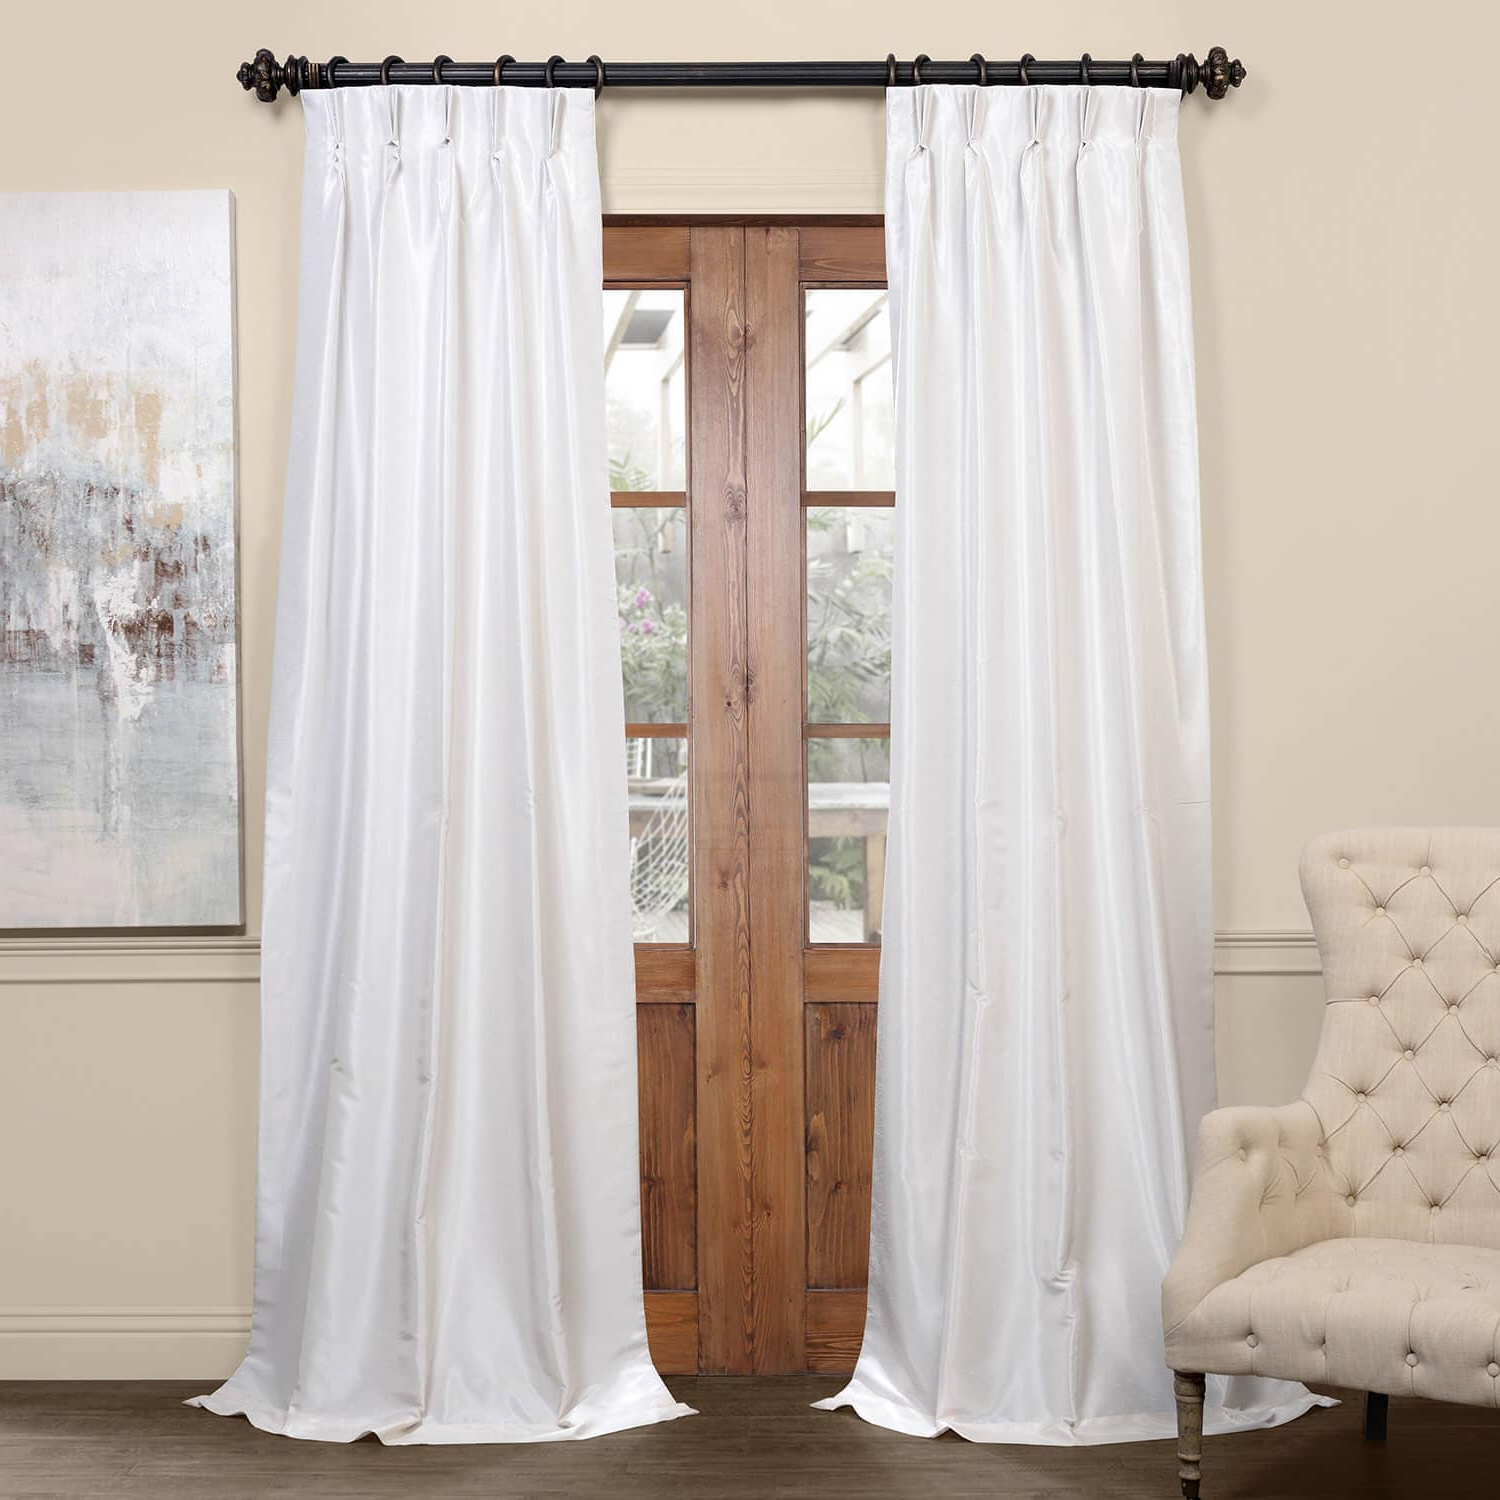 True Blackout Vintage Textured Faux Silk Curtain Panels With 2020 Off White Blackout Vintage Textured Faux Dupioni Pleated Curtain (View 16 of 20)